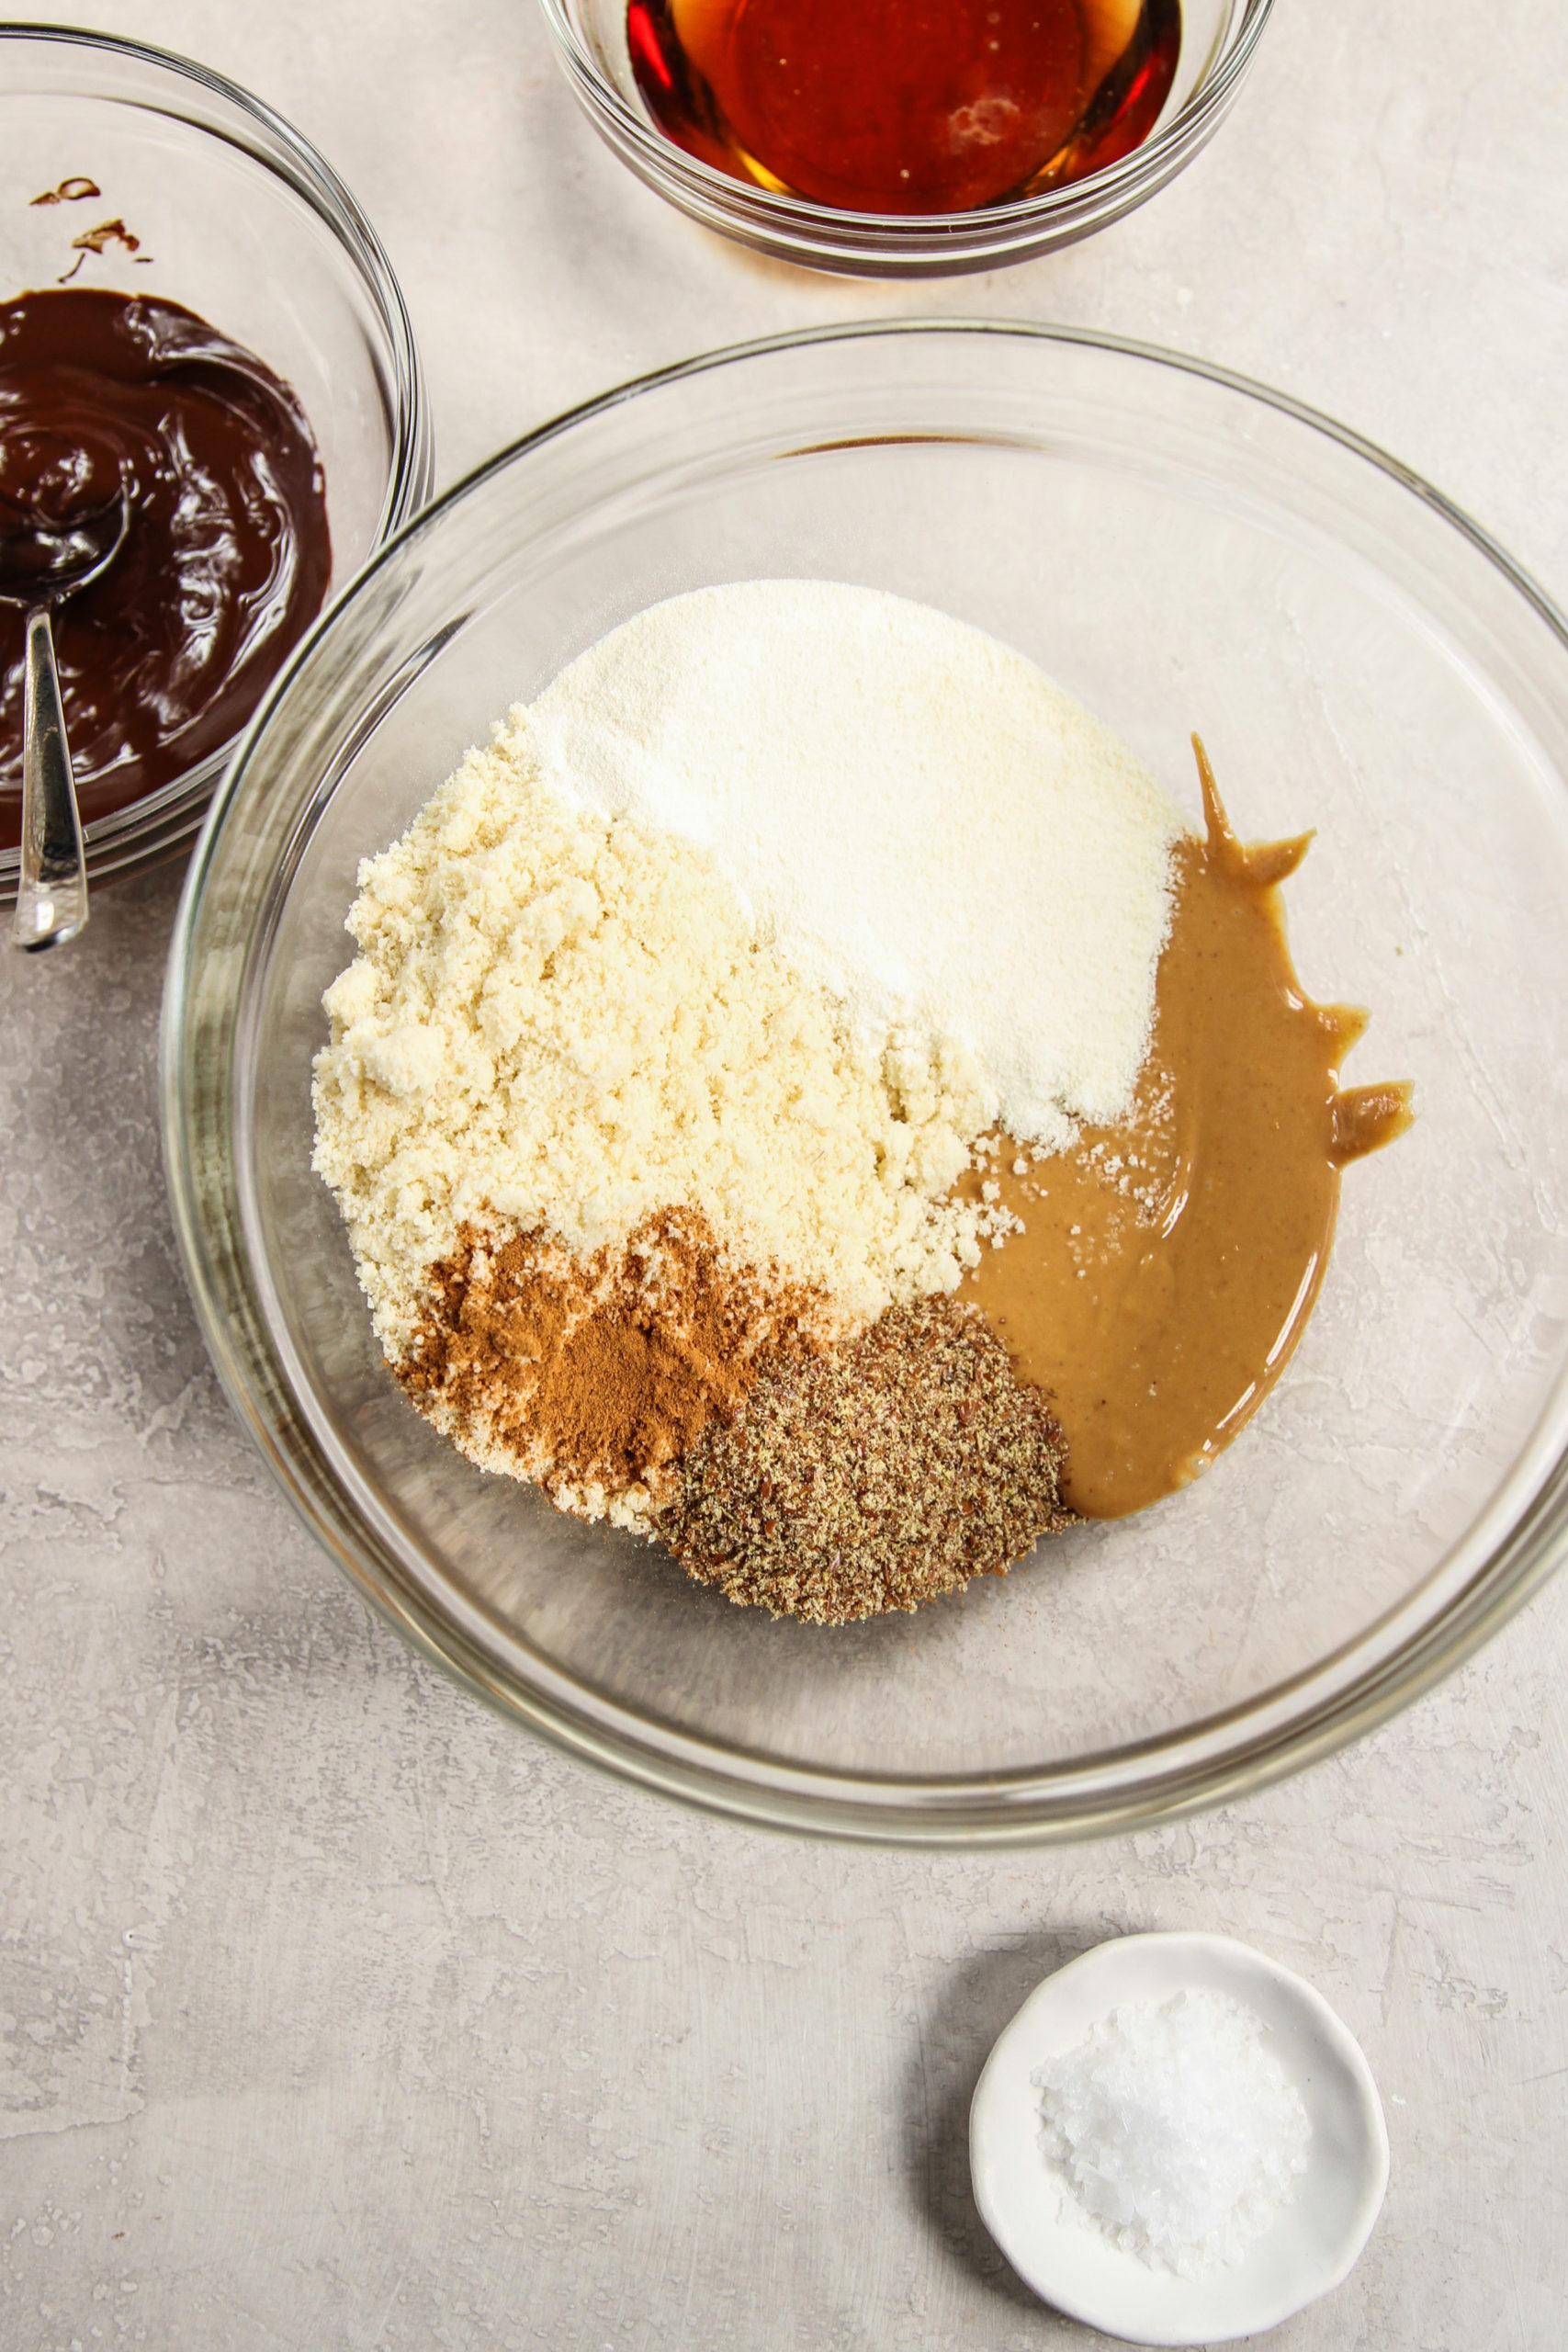 Ingredients used in the collagen protein powder snack bites